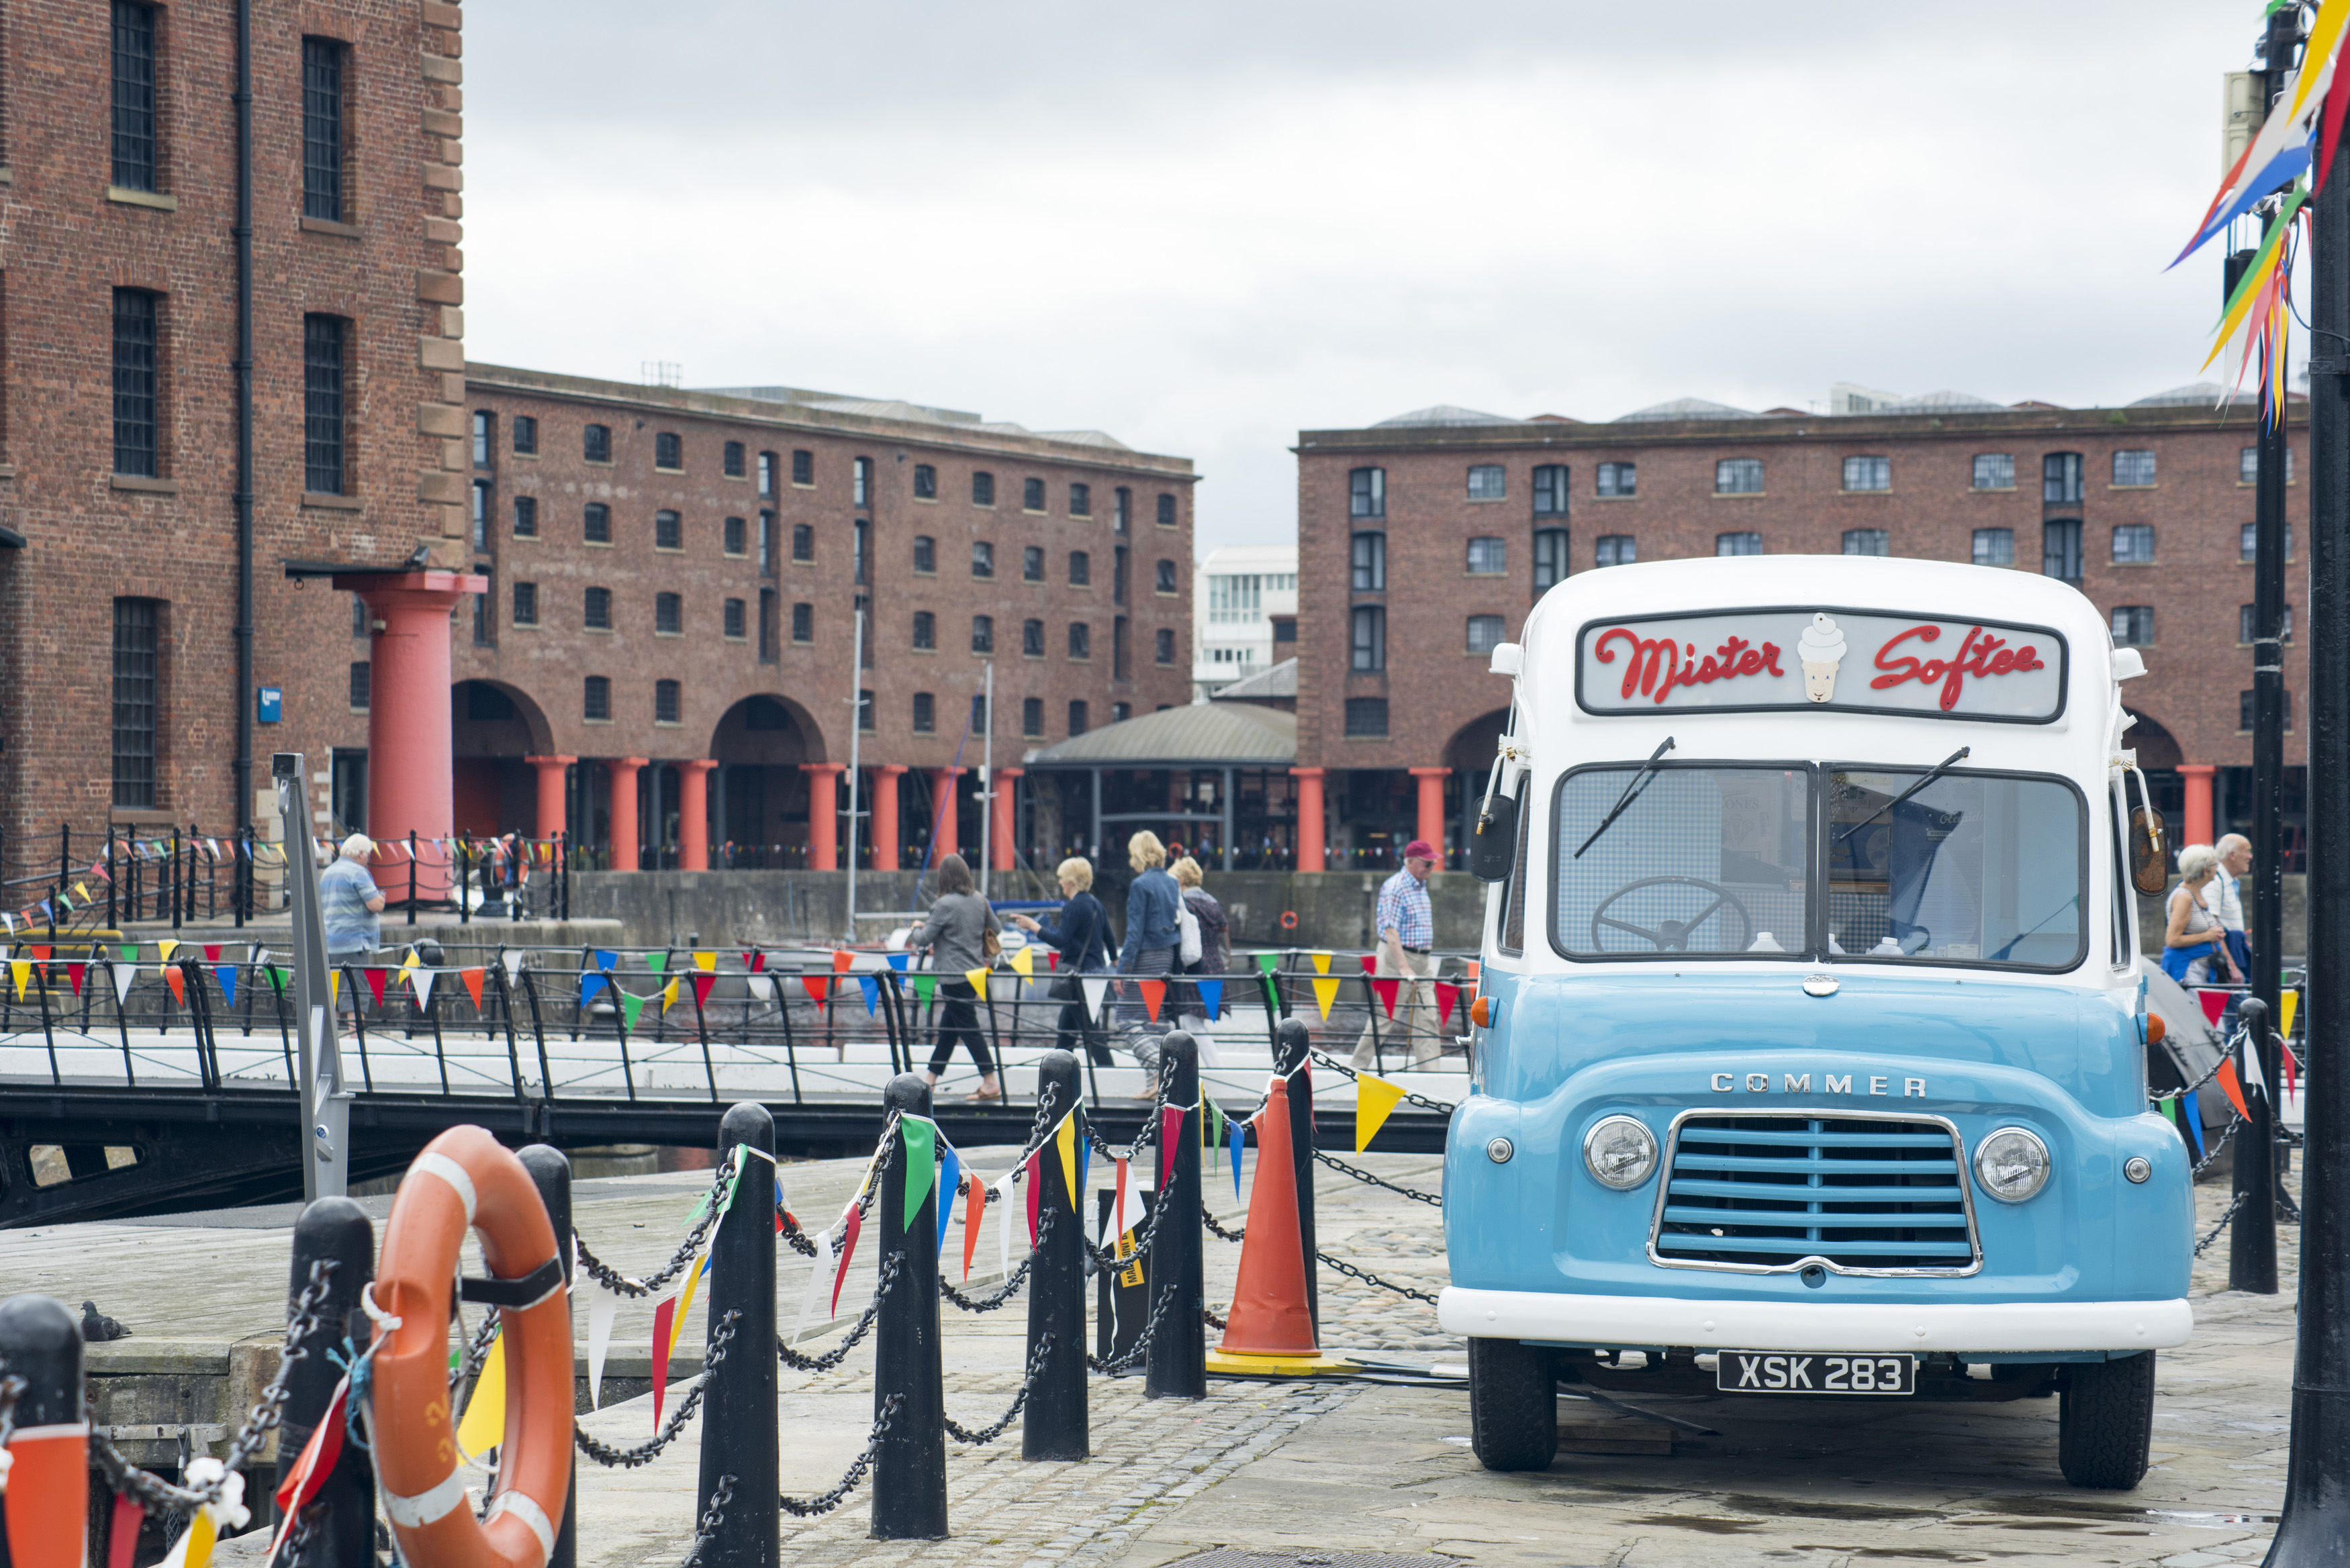 Old traditional ice cream van, Liverpool, England parked at the waterfront with people walking in the background